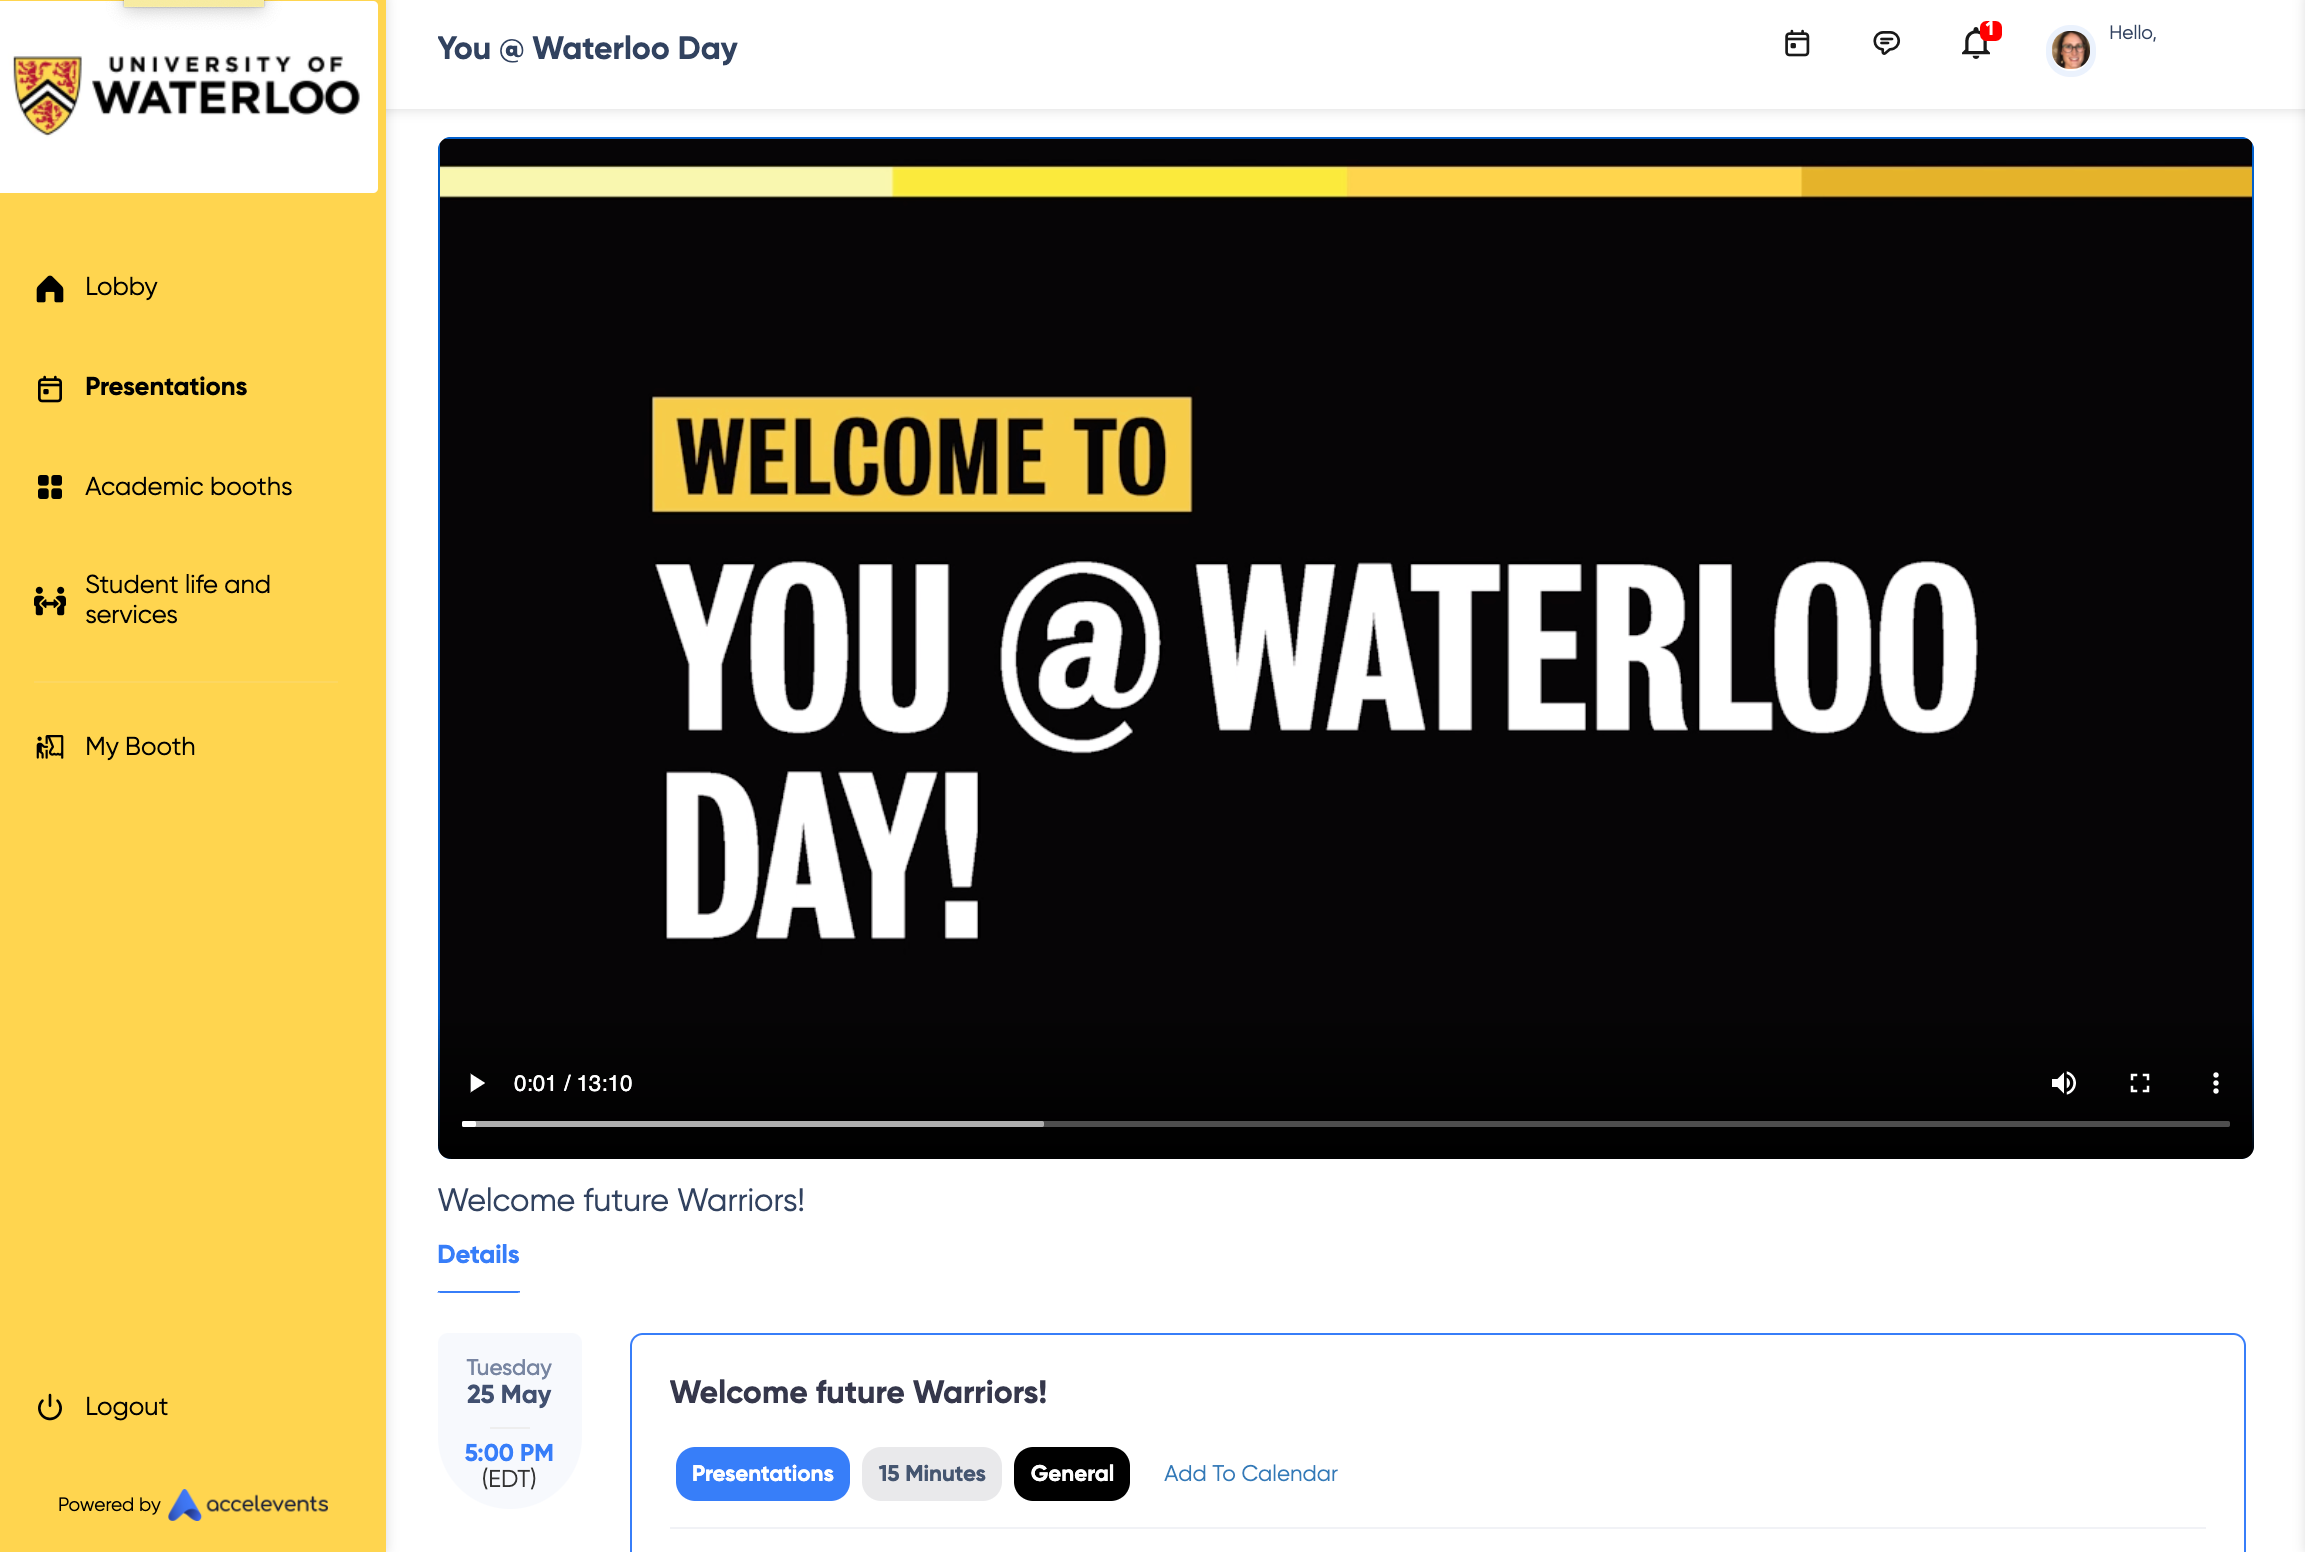 Virtual event with University of Waterloo